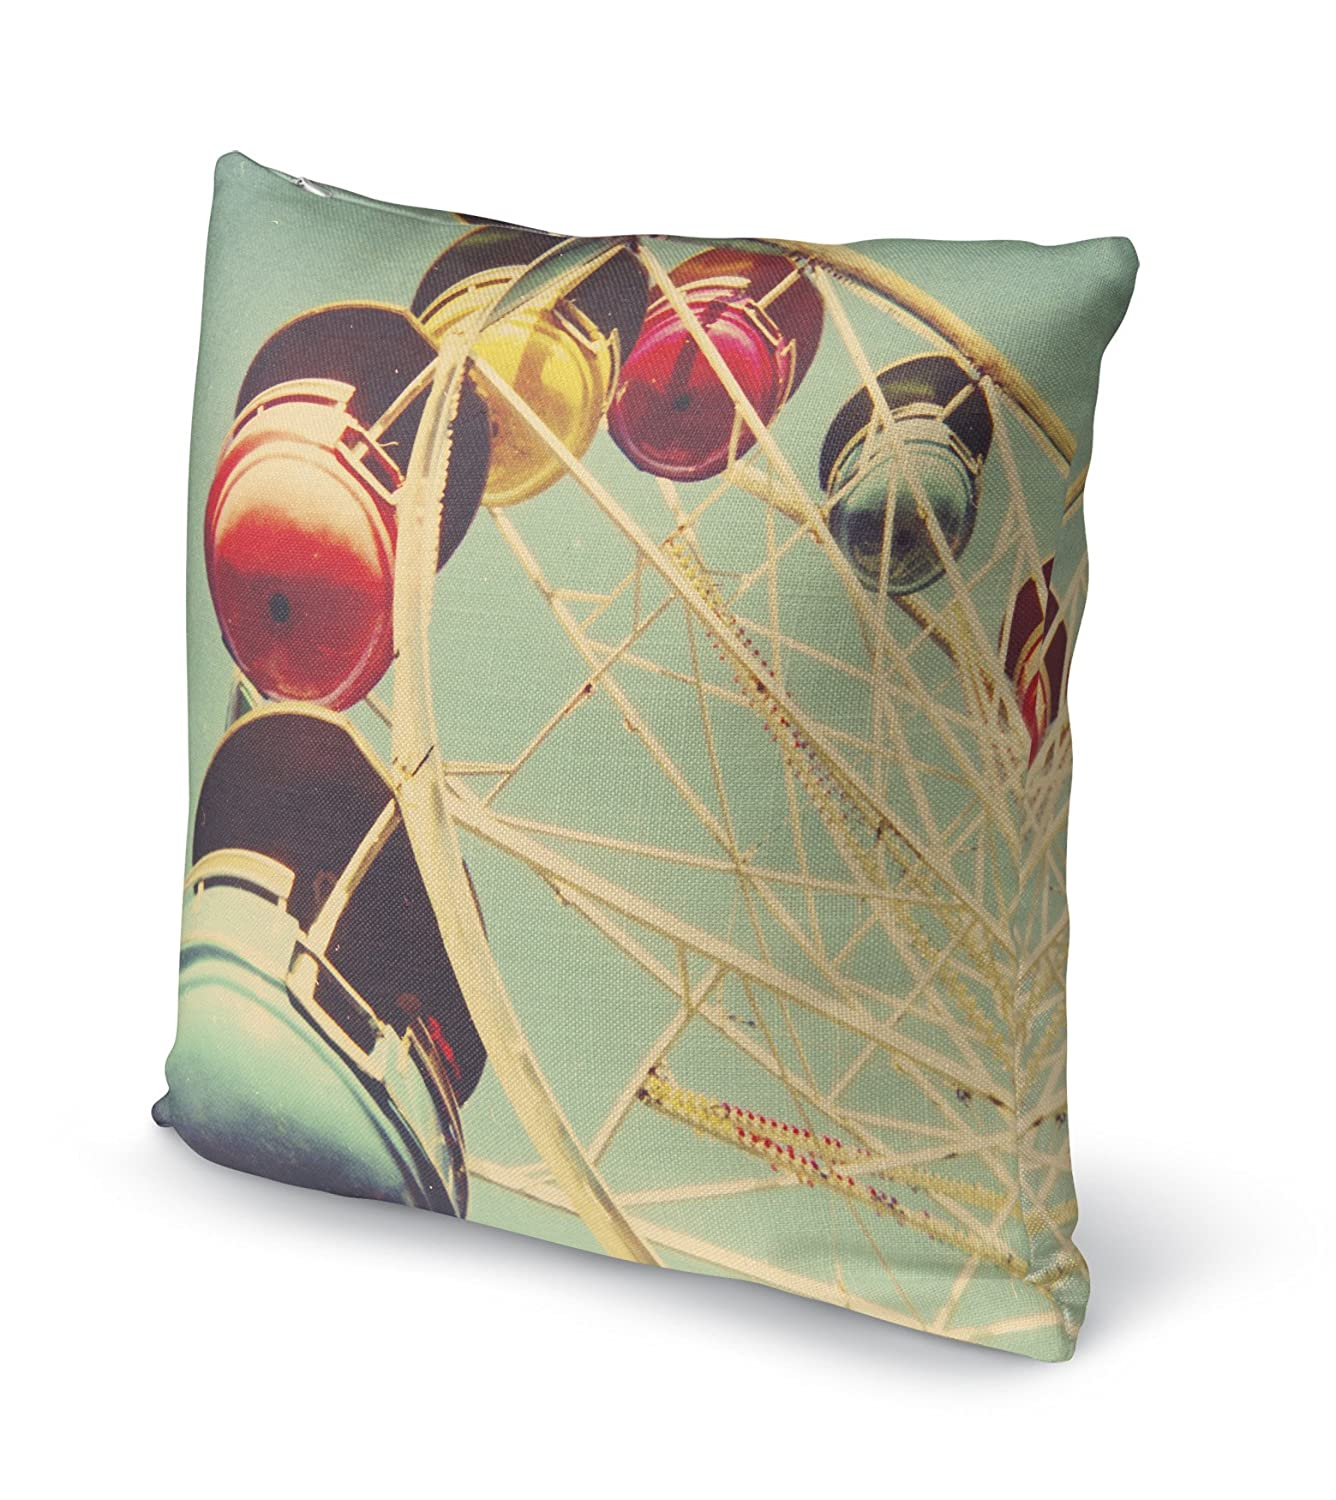 Size: 18X18X6 - KAVKA Designs 1971 Accent Pillow, Blue//Red//Yellow - Heartland Collection BOBAVC053DI18